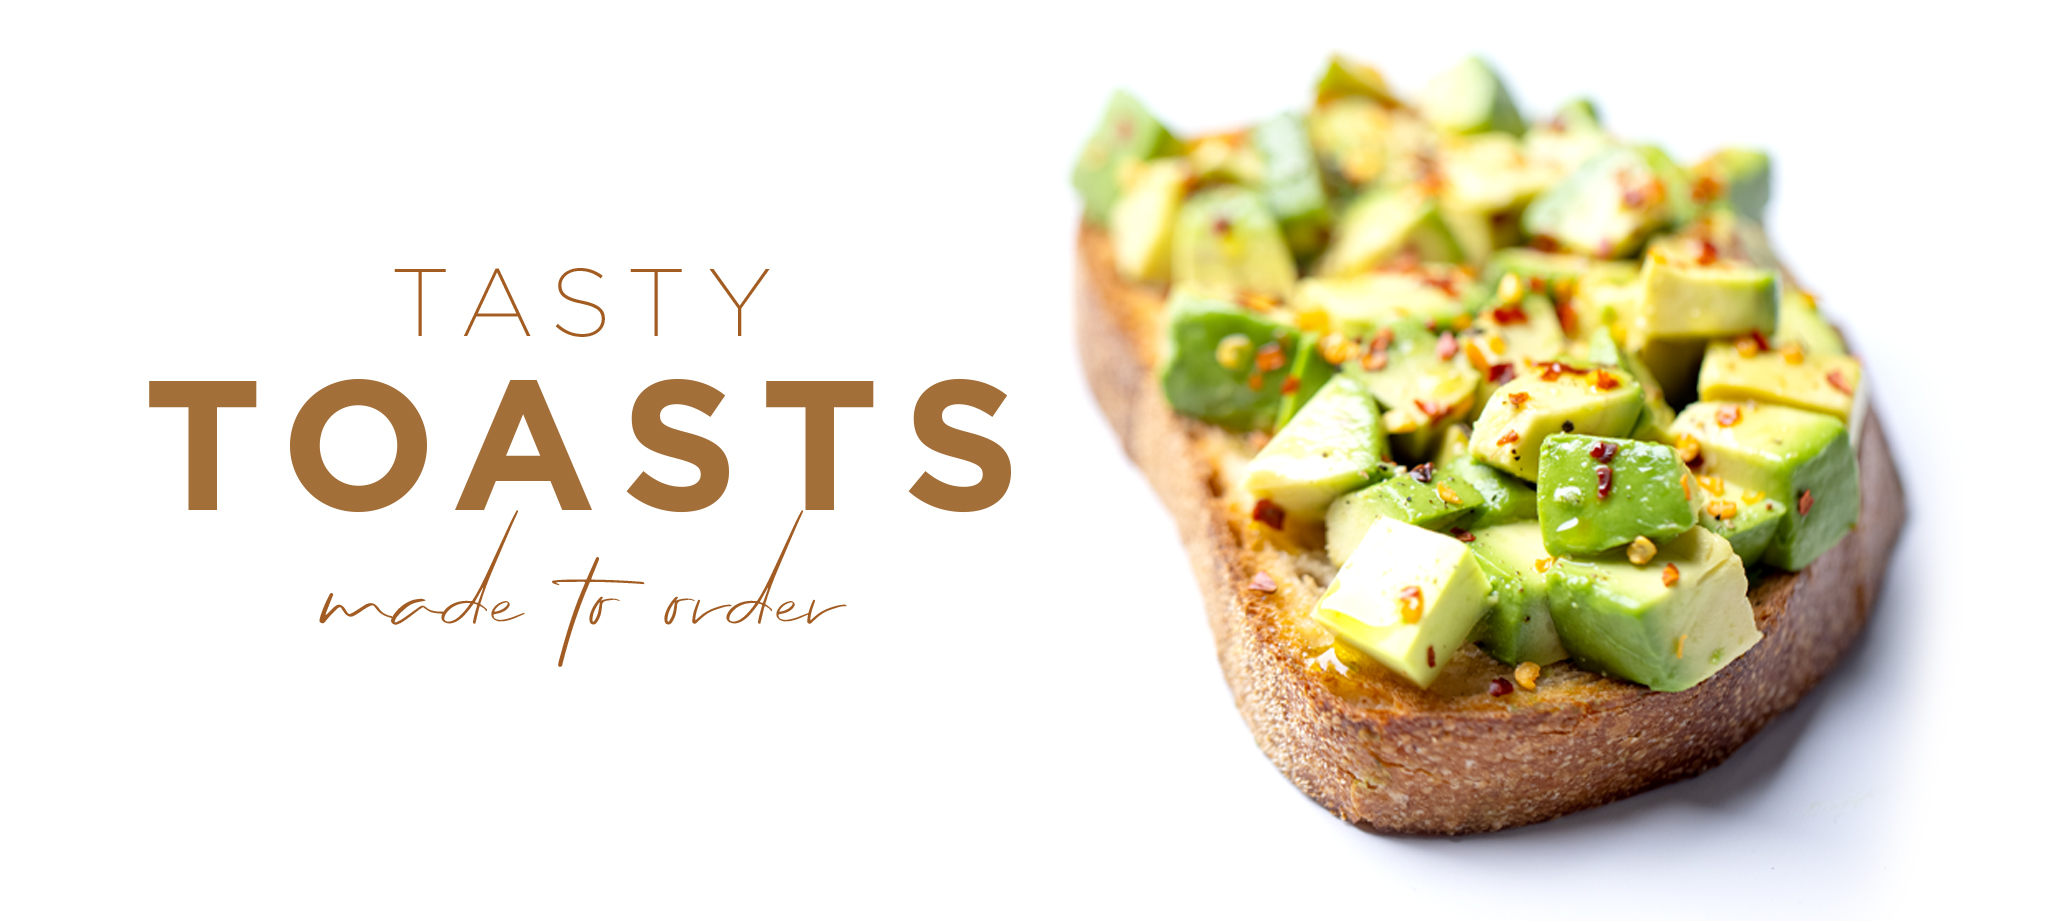 Tasty Toasts Made to Order